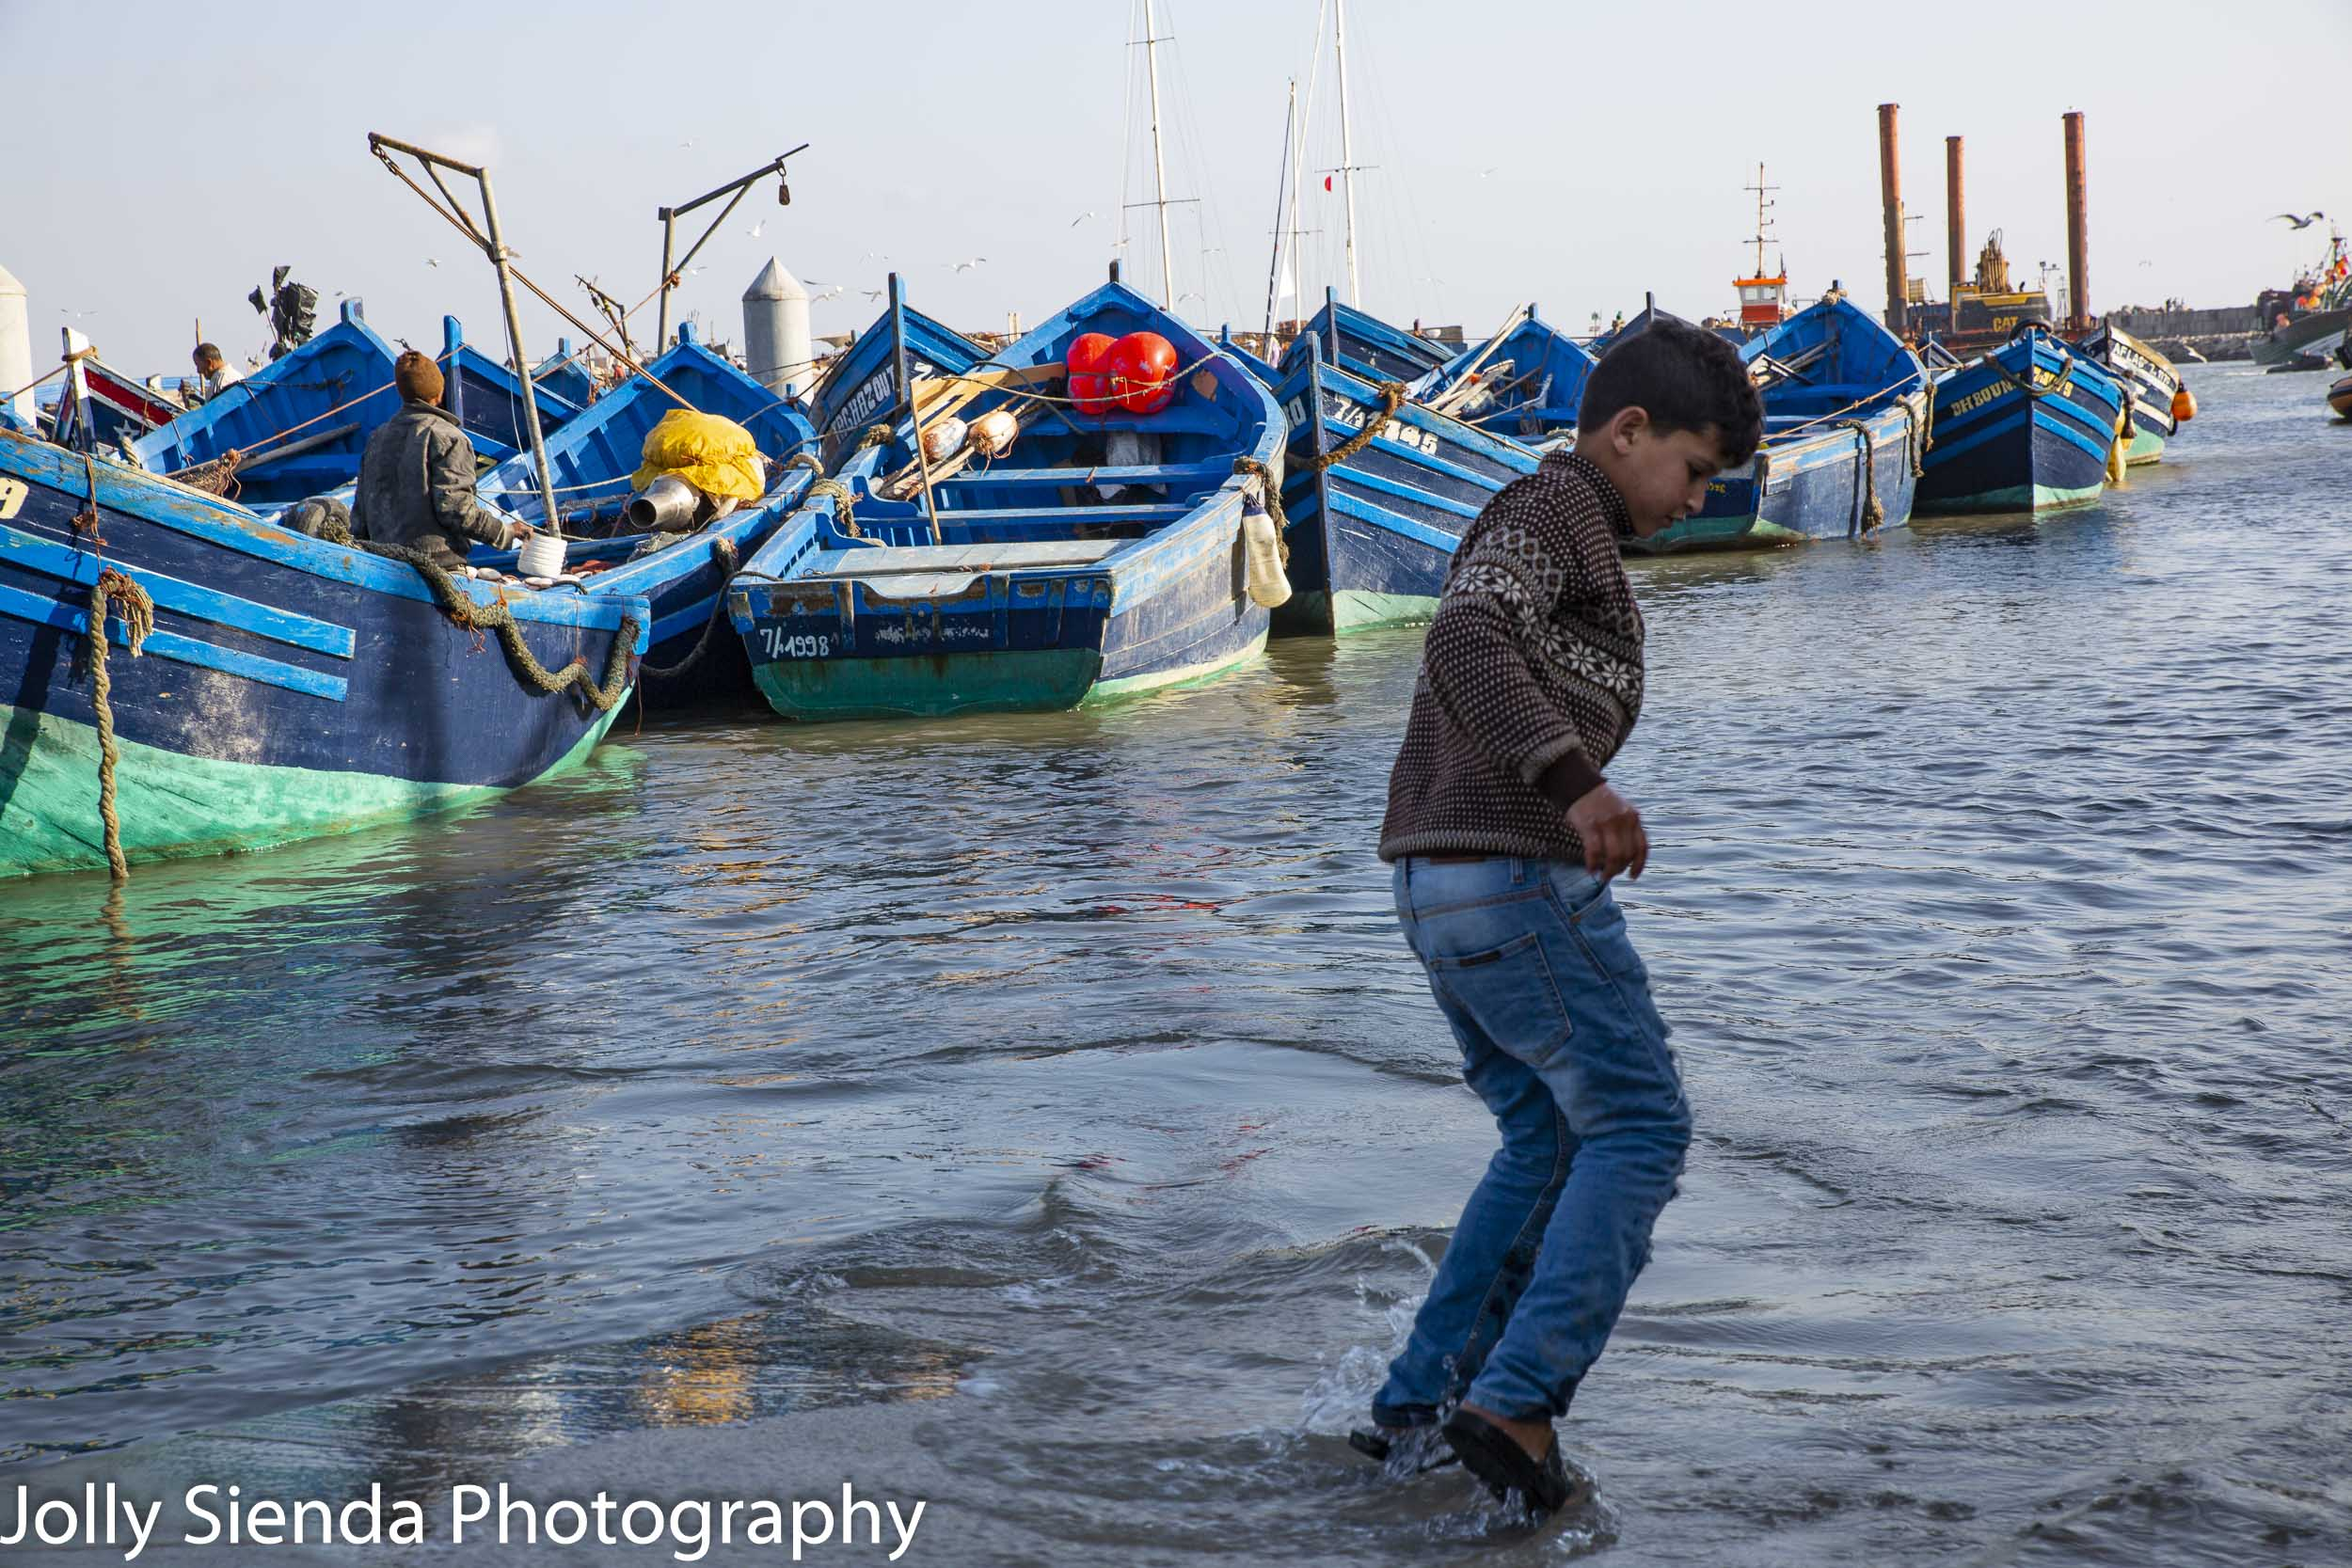 Boy plays in the water with fisherman and boats